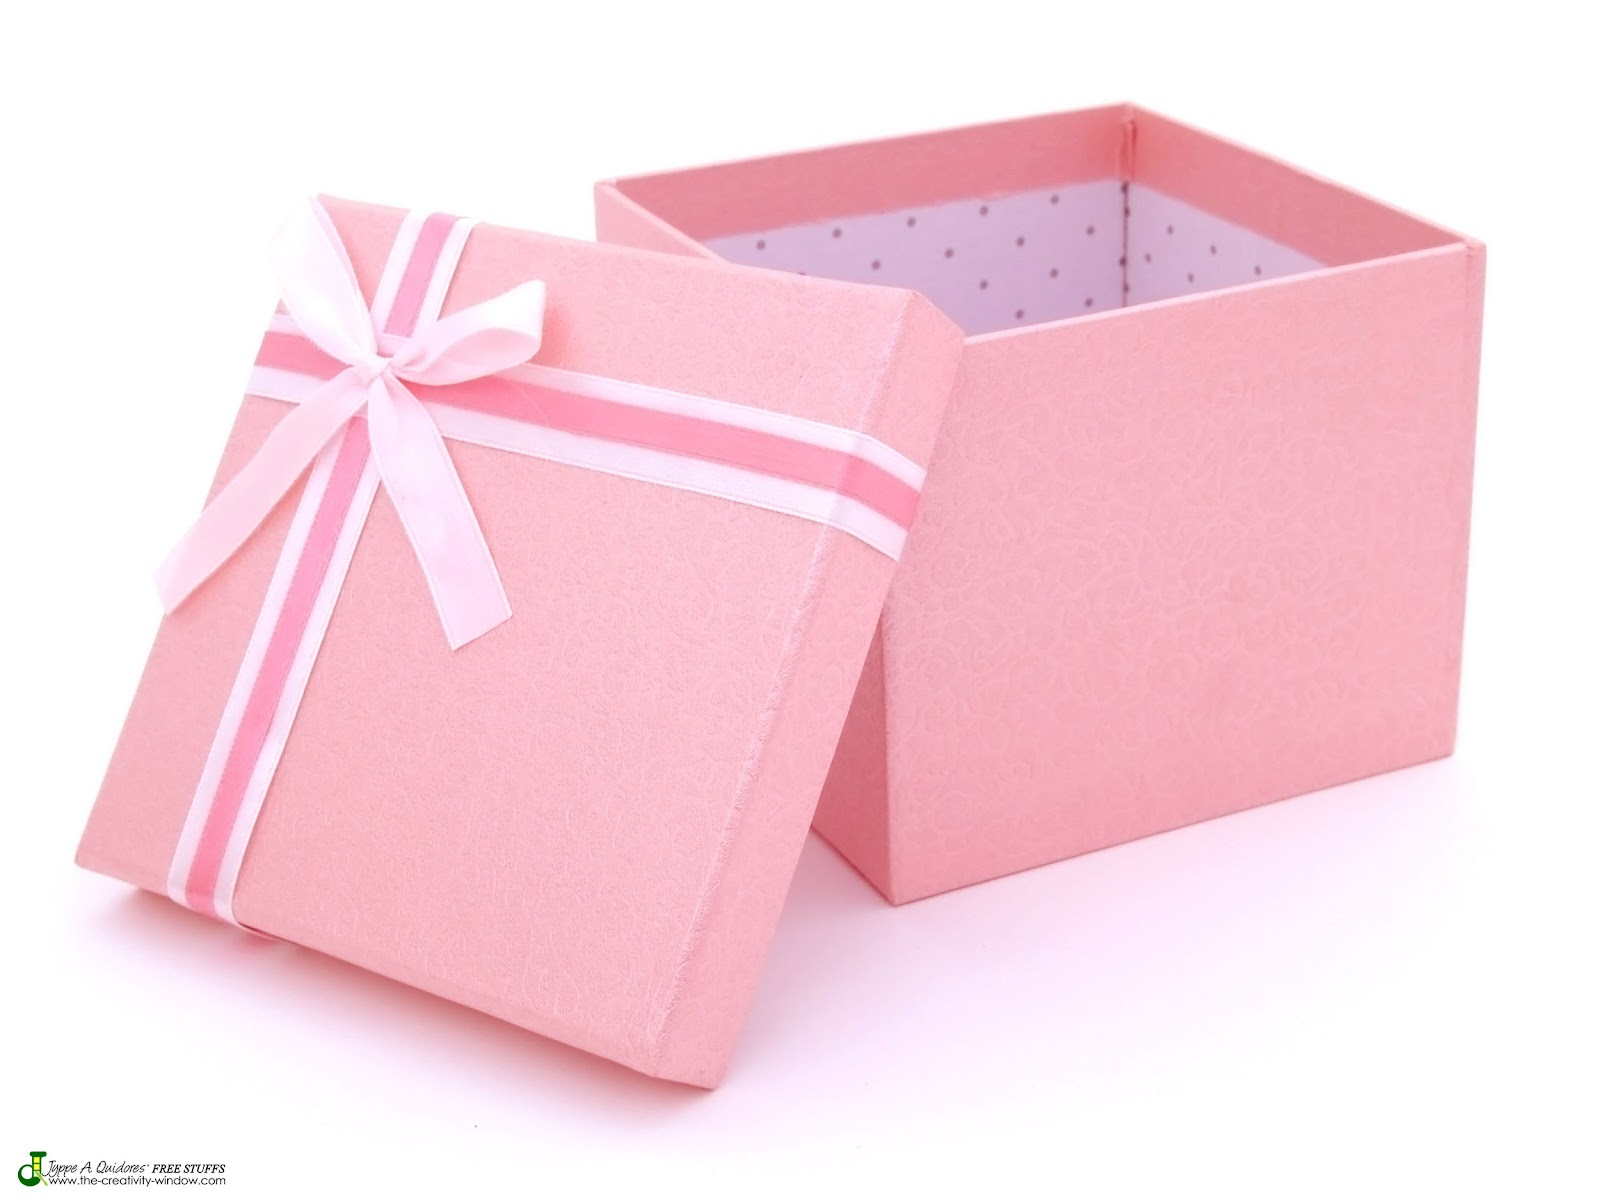 Download: Open Pink Gift Box Image